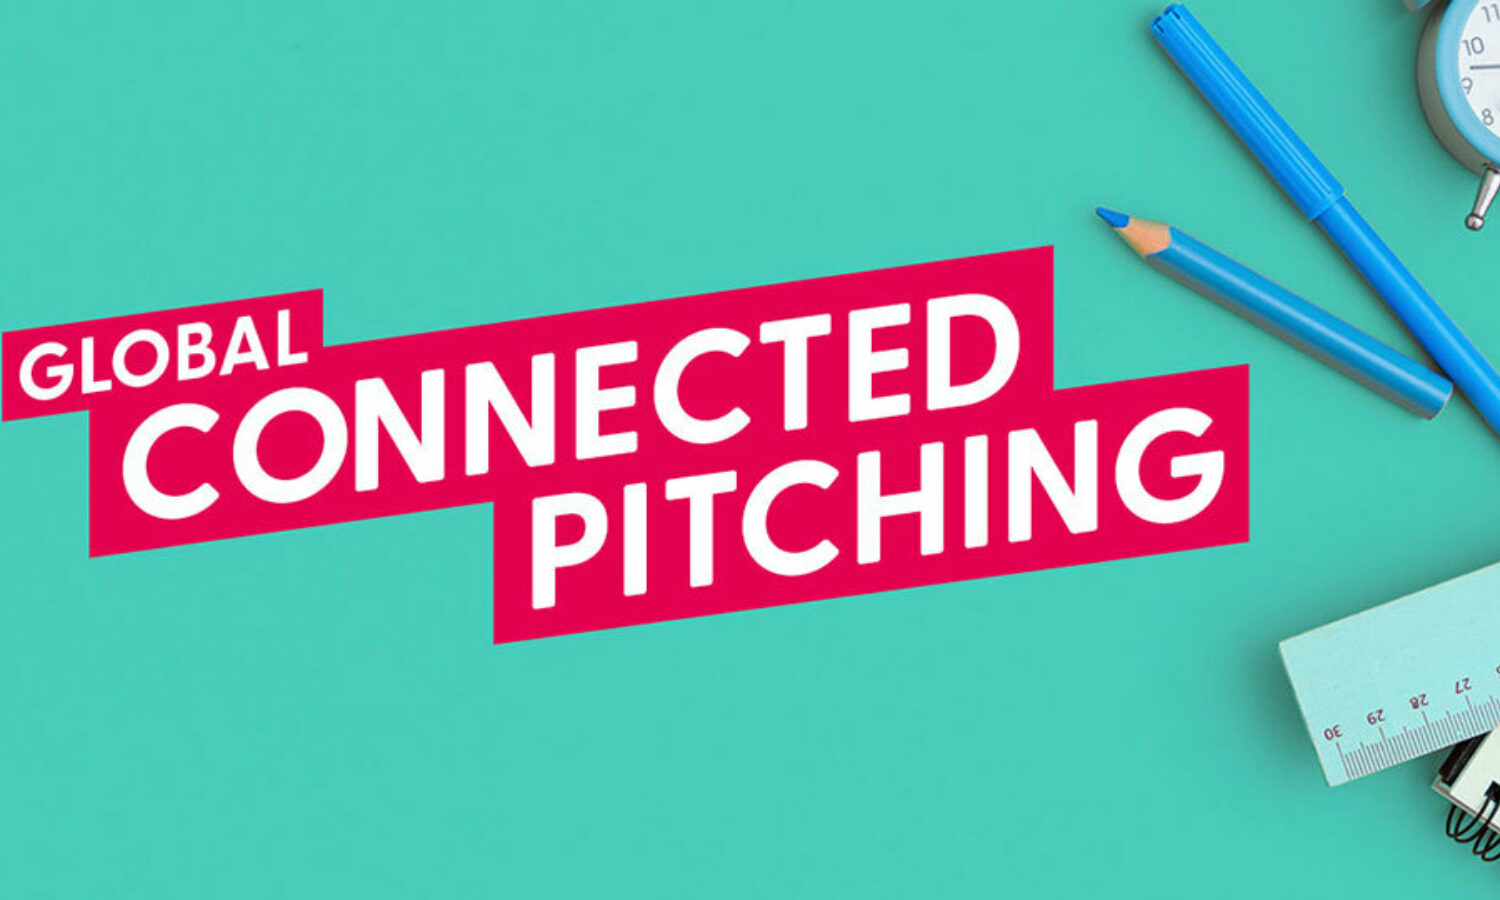 Connected pitching